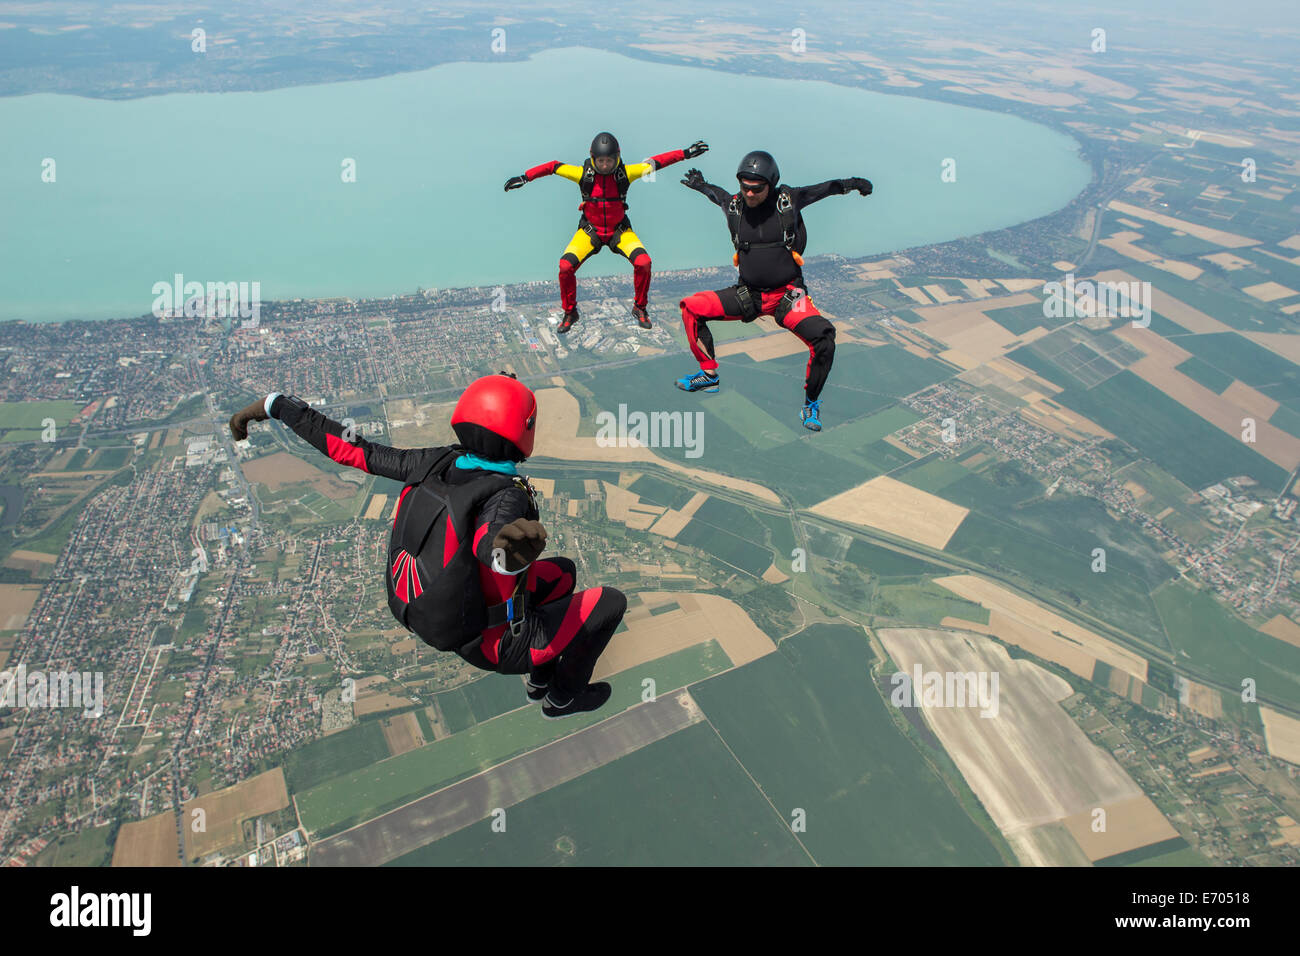 Three skydivers freeflying in formation, Siofok, Somogy, Hungary - Stock Image